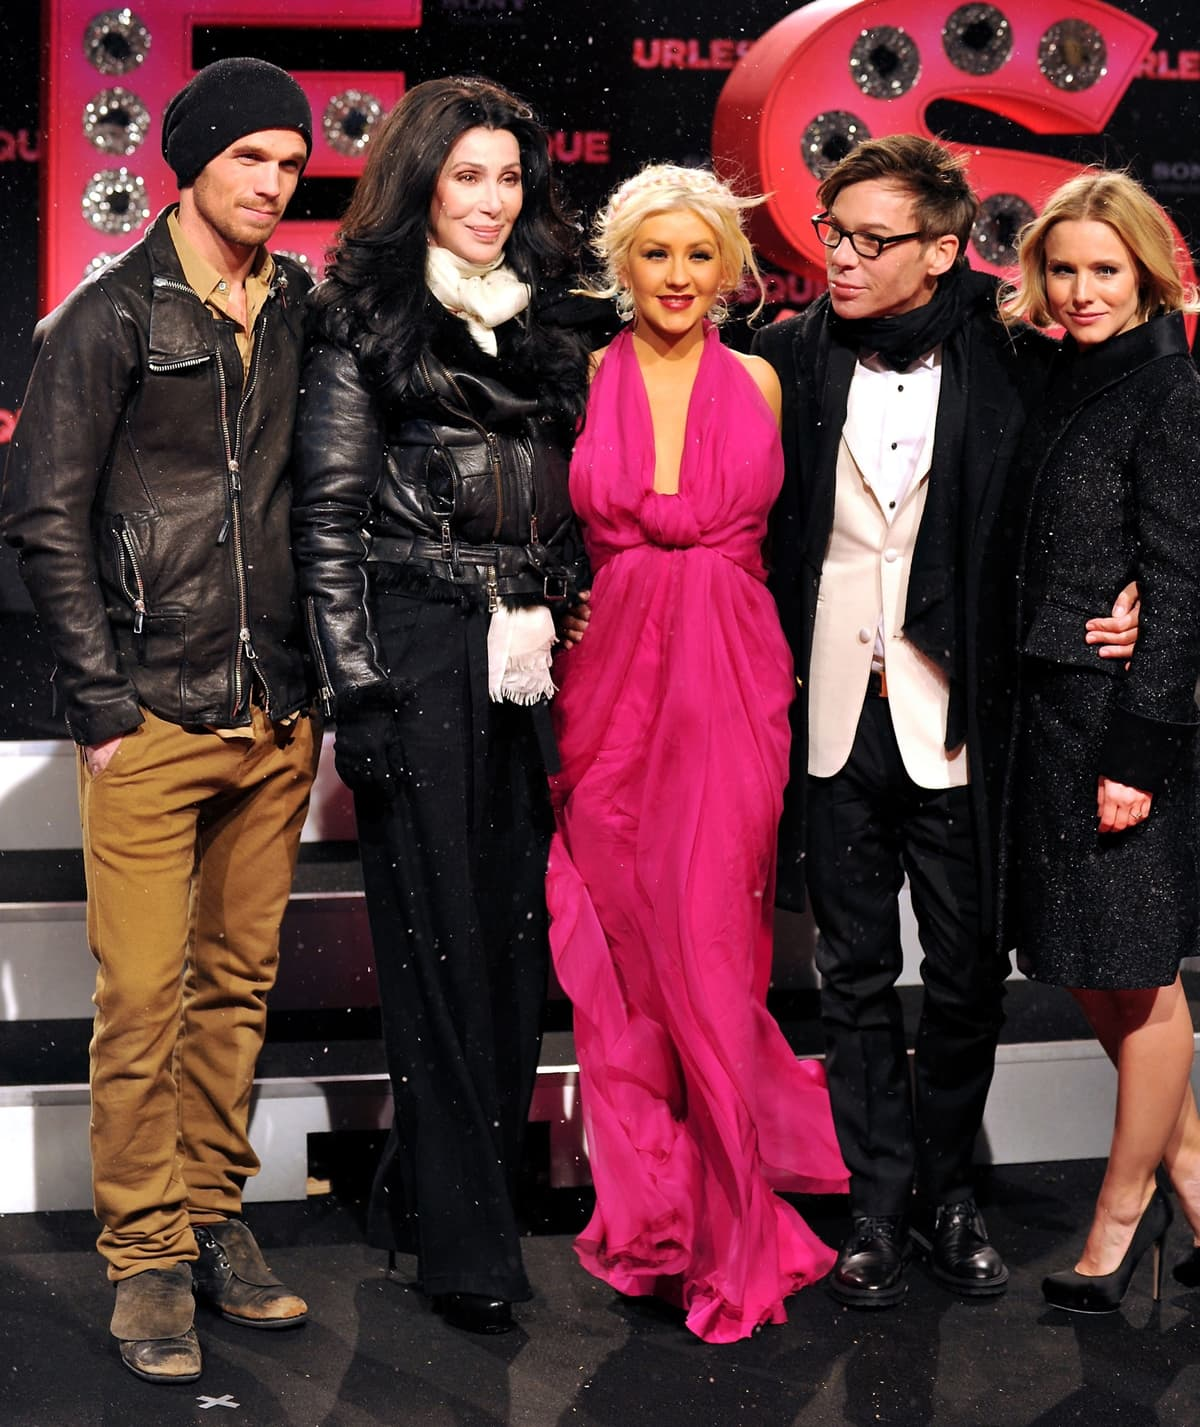 Actor Cam Gigandet, actress Cher, actress Christina Aguilera, director Steven Antin and actress Kristen Bell attend the 'Burlesque' Germany premiere